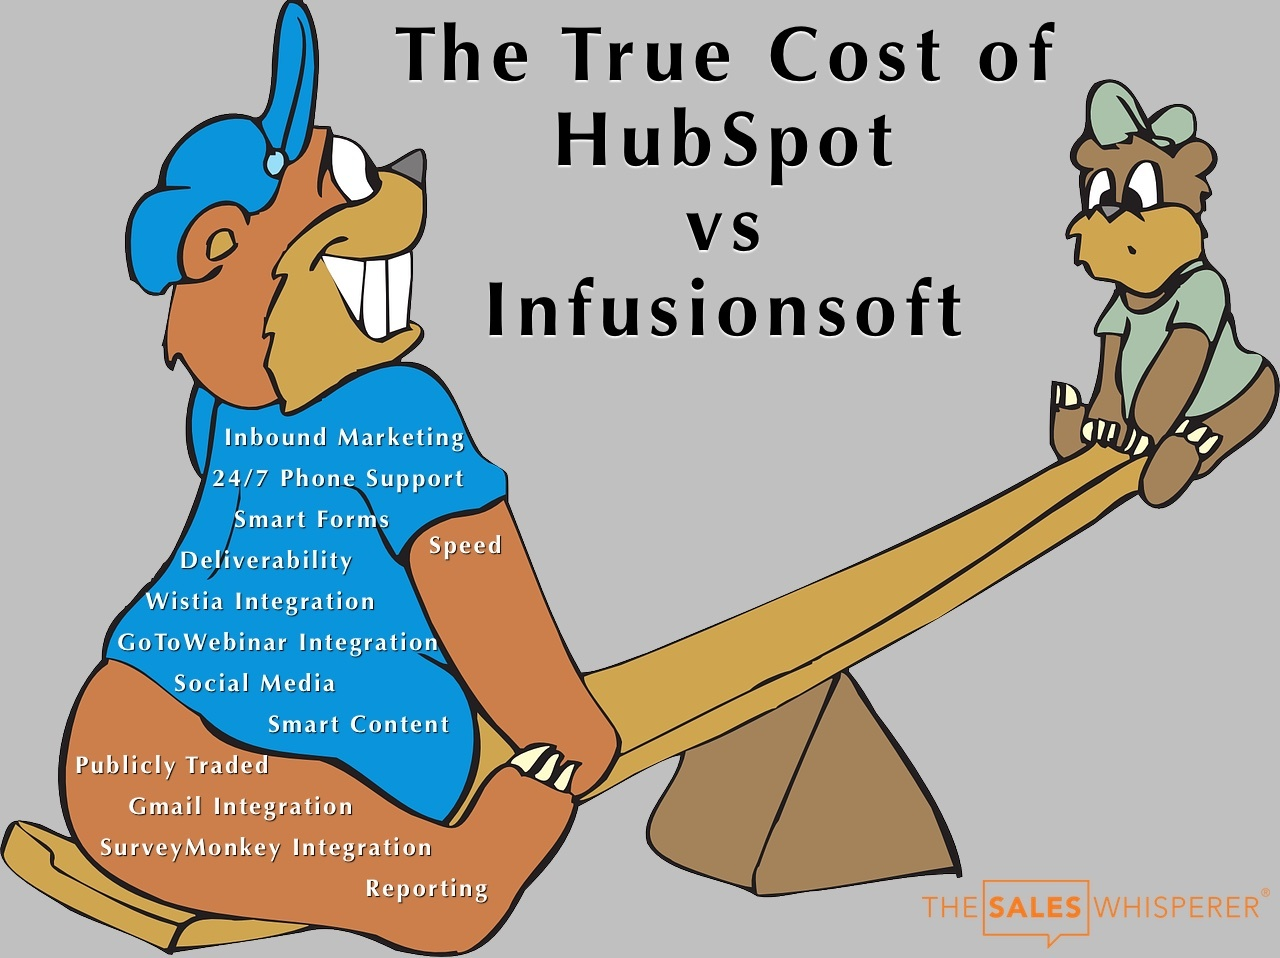 hubspot_vs_infusionsoft_true_cost